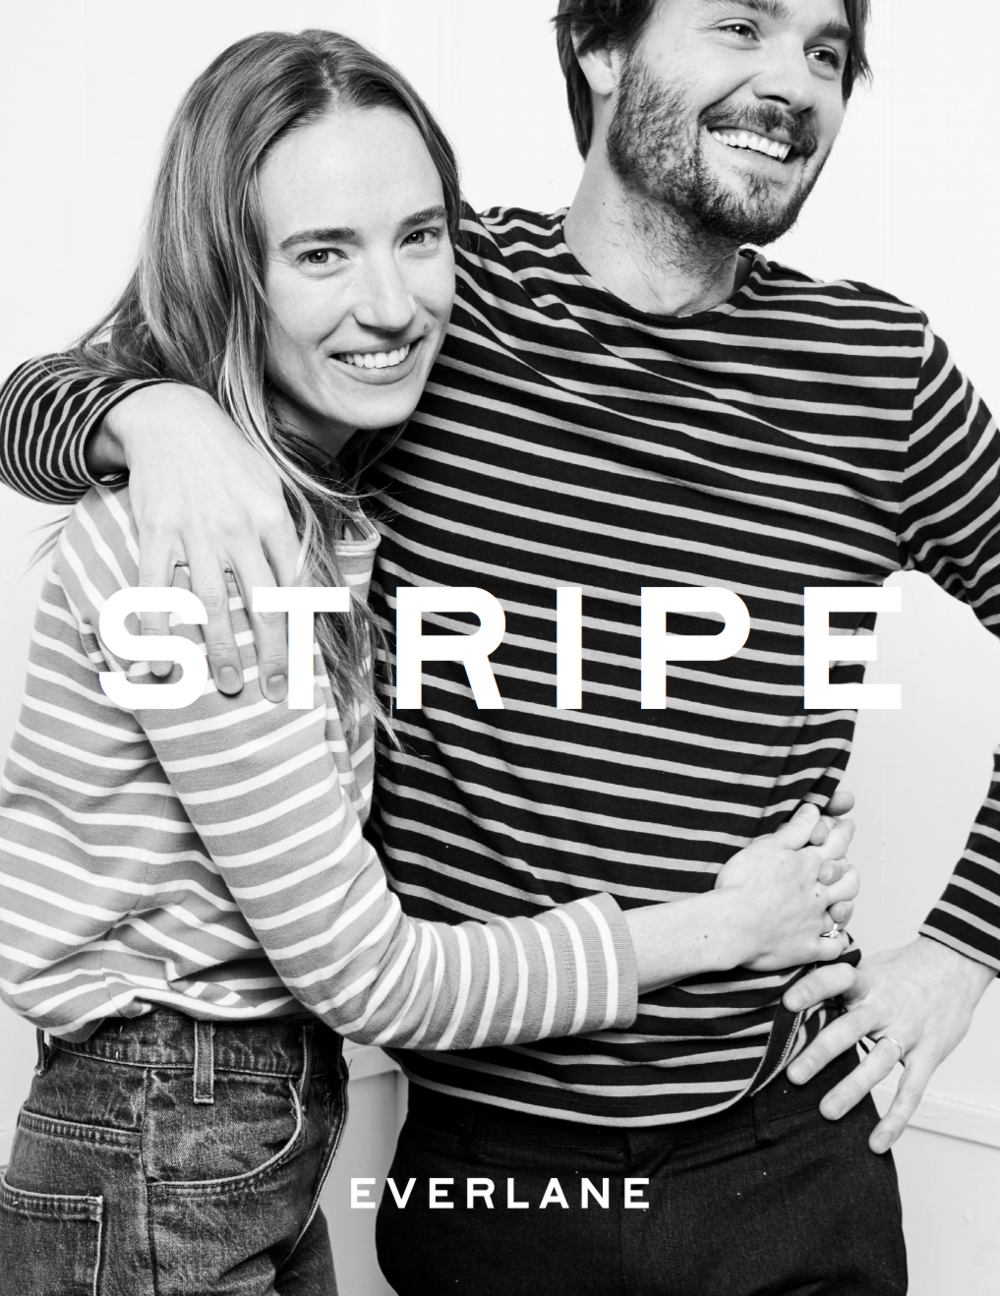 Hopped back to NYC a few weeks ago to shoot this exciting new campaign for Everlane. Launching 2/8! everlane: Started with the boys. Stolen by the girls. Just in time for Valentine's: Breton Stripes for all. Arrives February 8th.